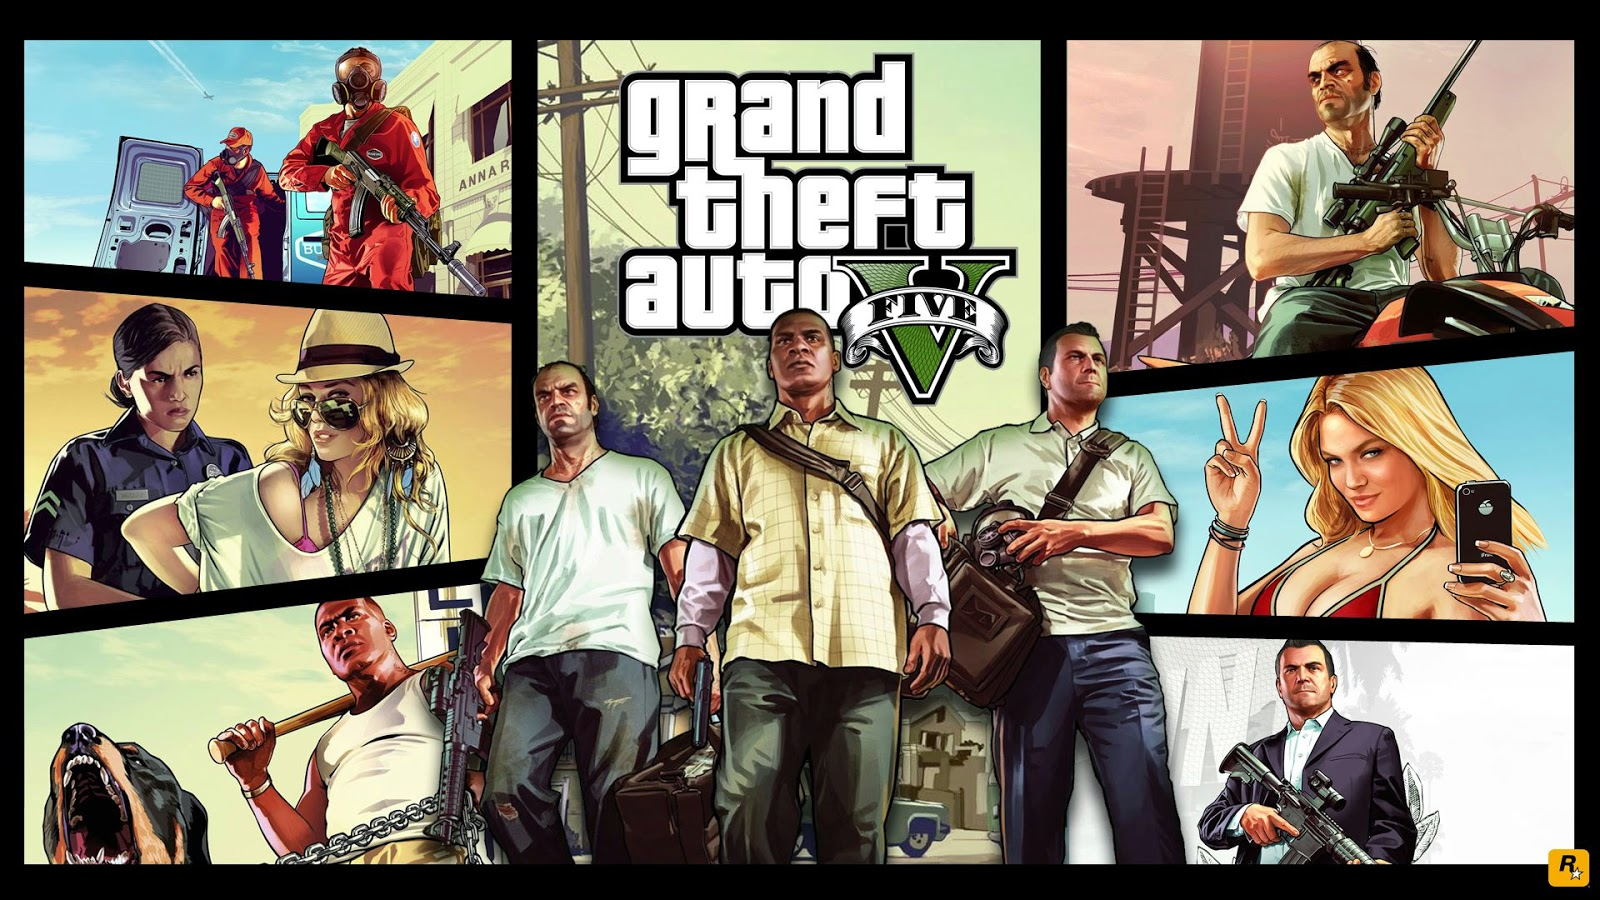 Download Grand Theft Auto GTA 5 Wallpapers HD wallpapers for freeNo 1600x900